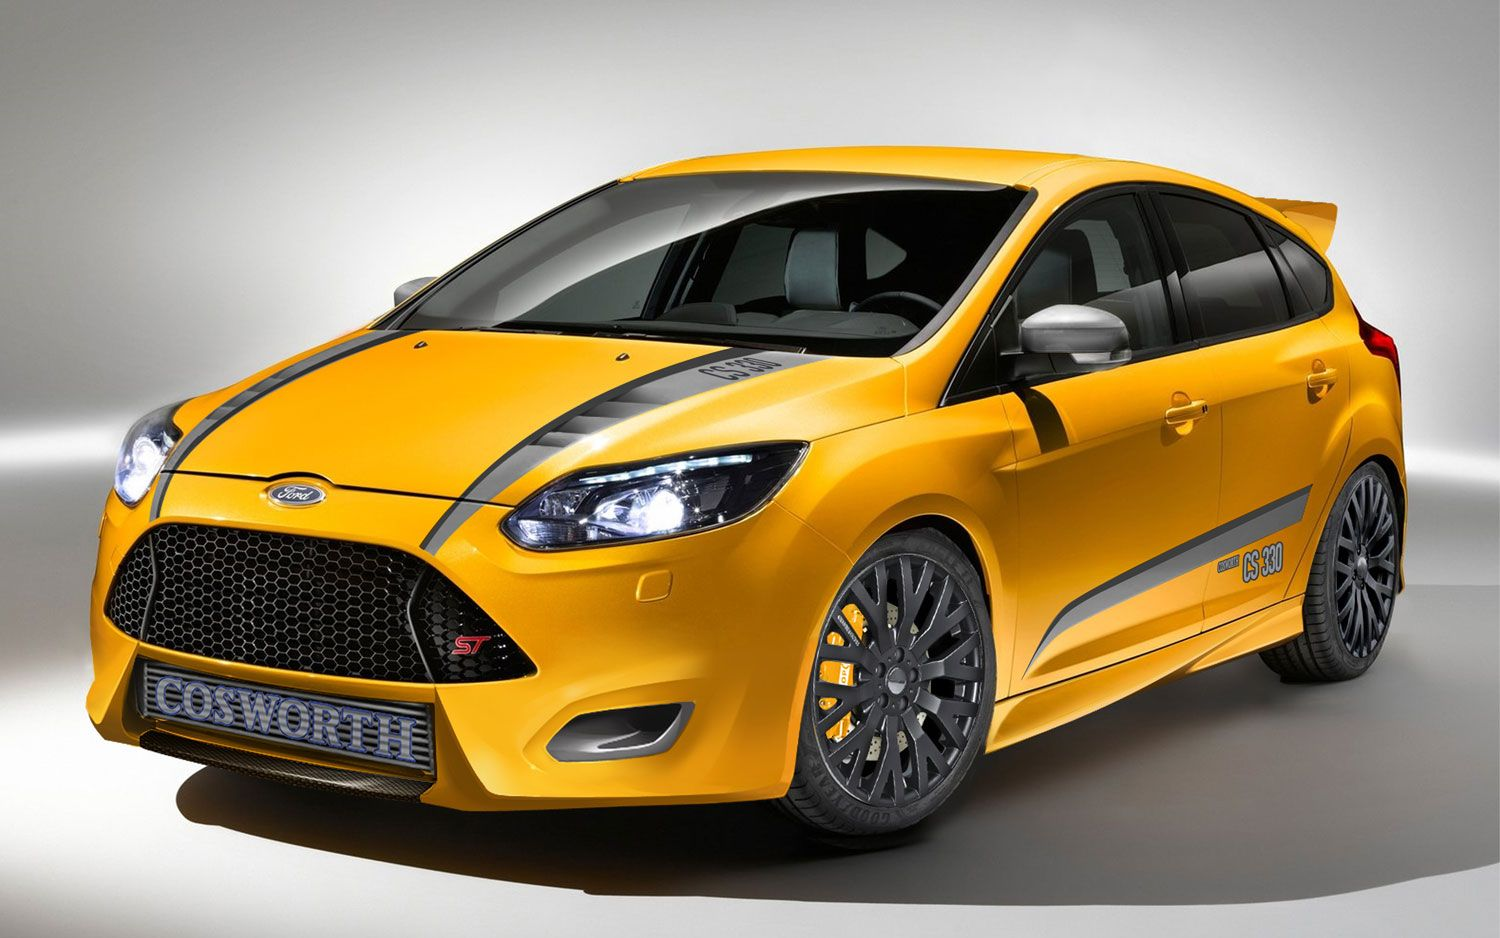 Customized 2013 Ford Focus St Show Cars Previewed Ahead Of Sema Debut Ford Focus St Ford Focus Ford Focus Rs